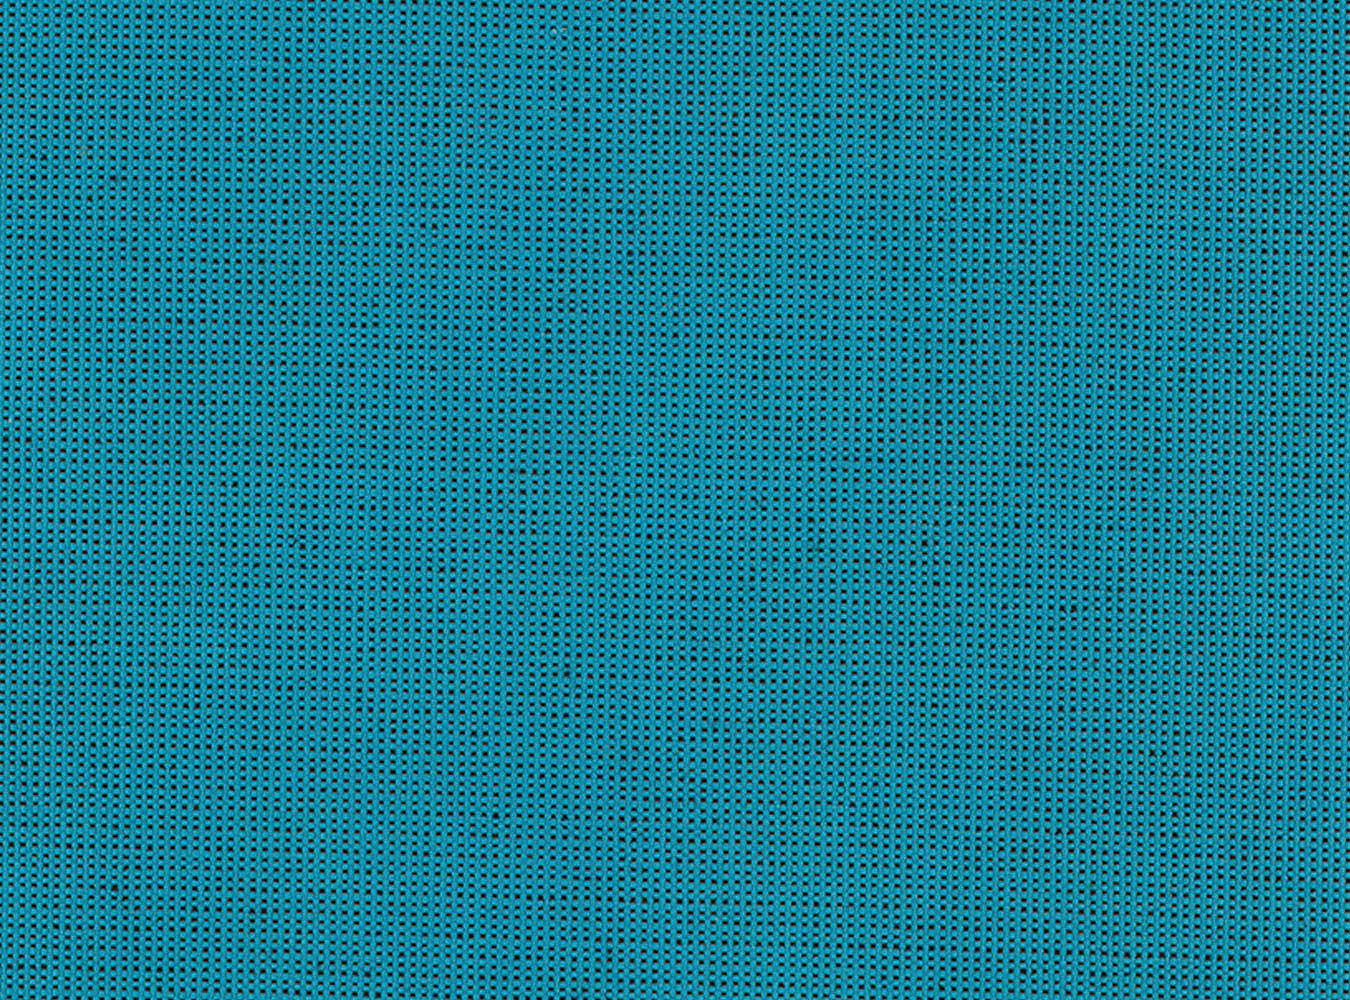 Taupo Aqua - Swatch Sample